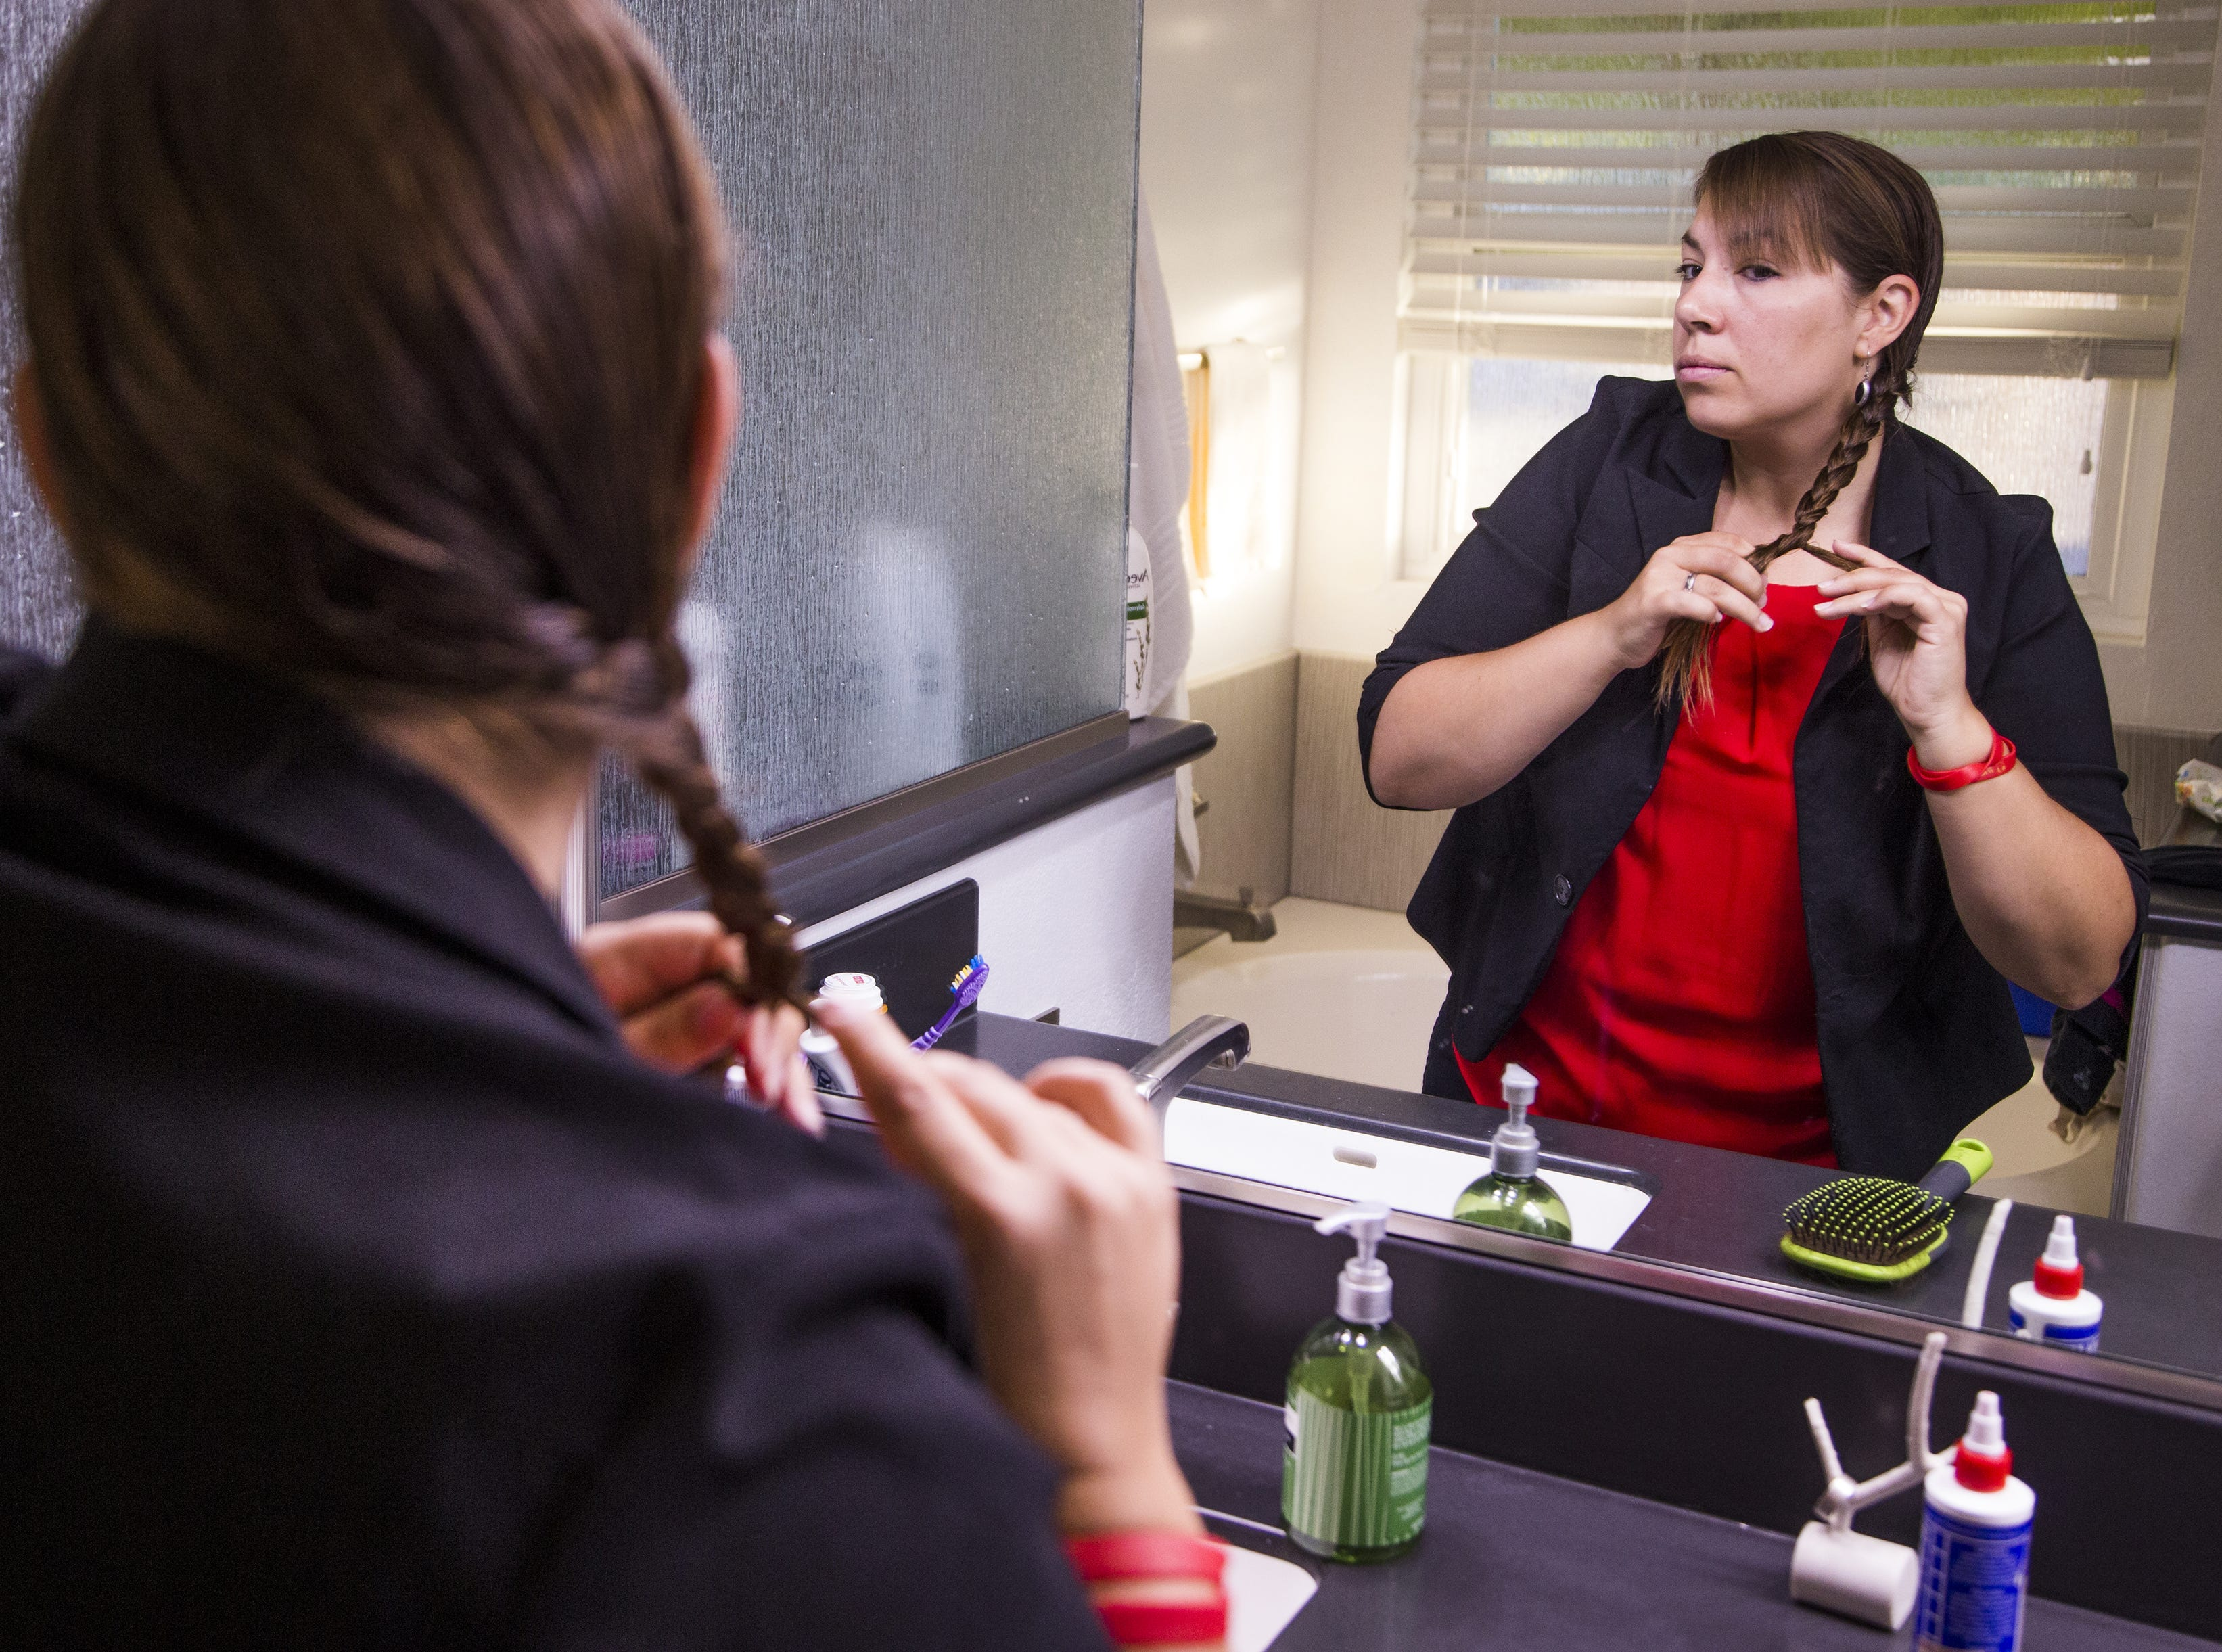 Rebecca Garelli brushes her hair at 6:41 am before heading out for her 30-mile commute to Sevilla West Elementary School in Phoenix, Monday, September 17, 2018. Garelli has been one of the leaders of the #RedforEd movement, demanding increased funding for education in Arizona.